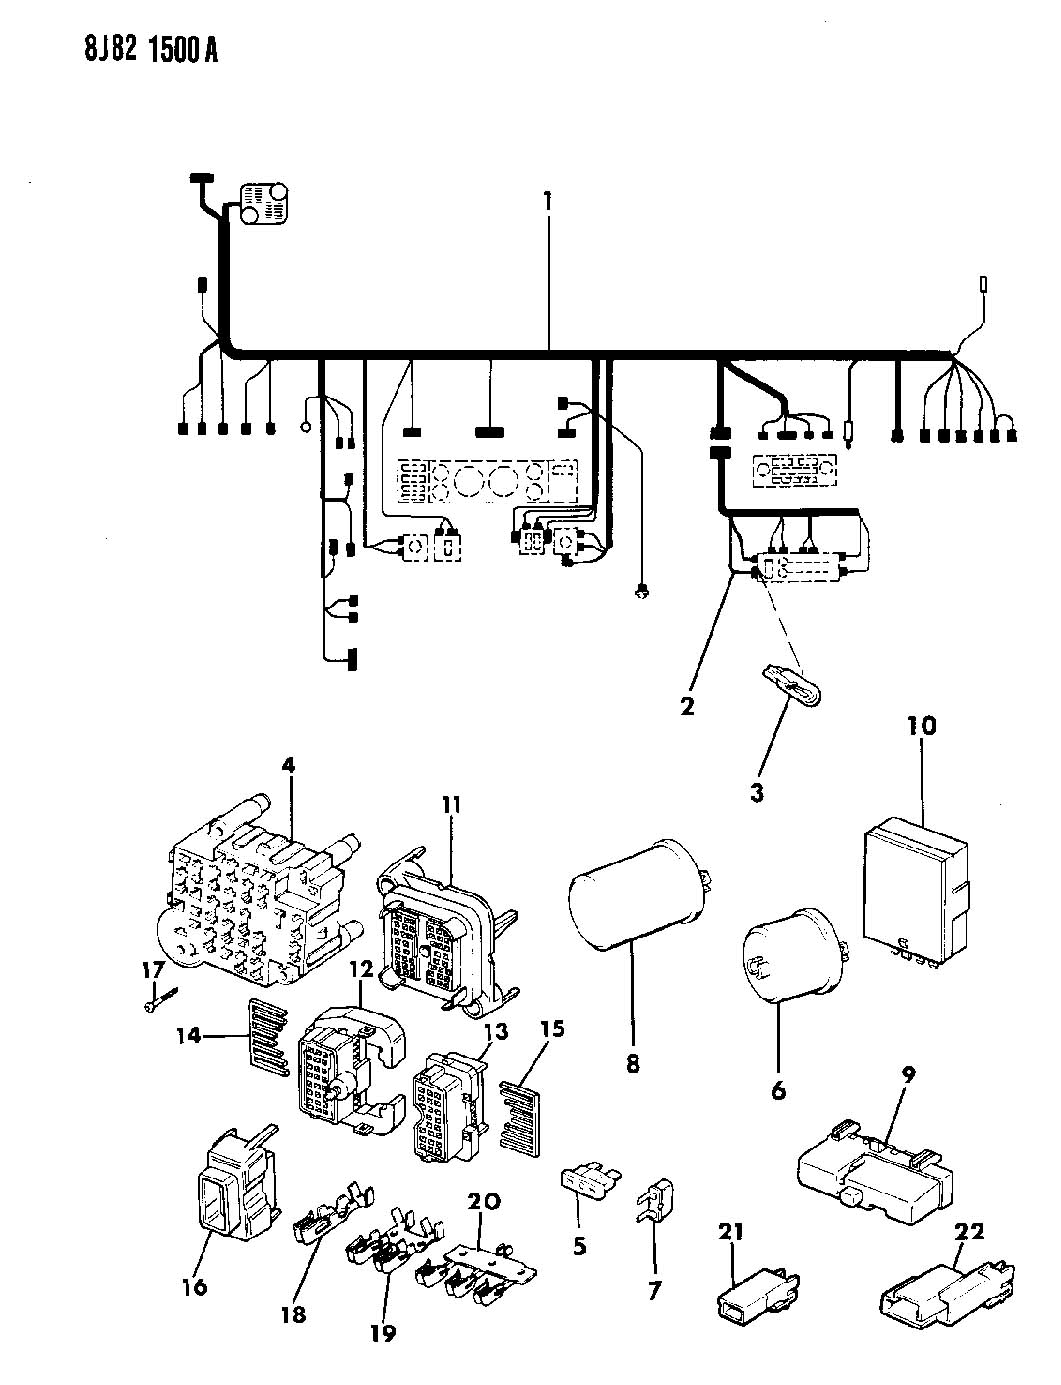 1987 Jeep Cherokee Fuse Box Diagram